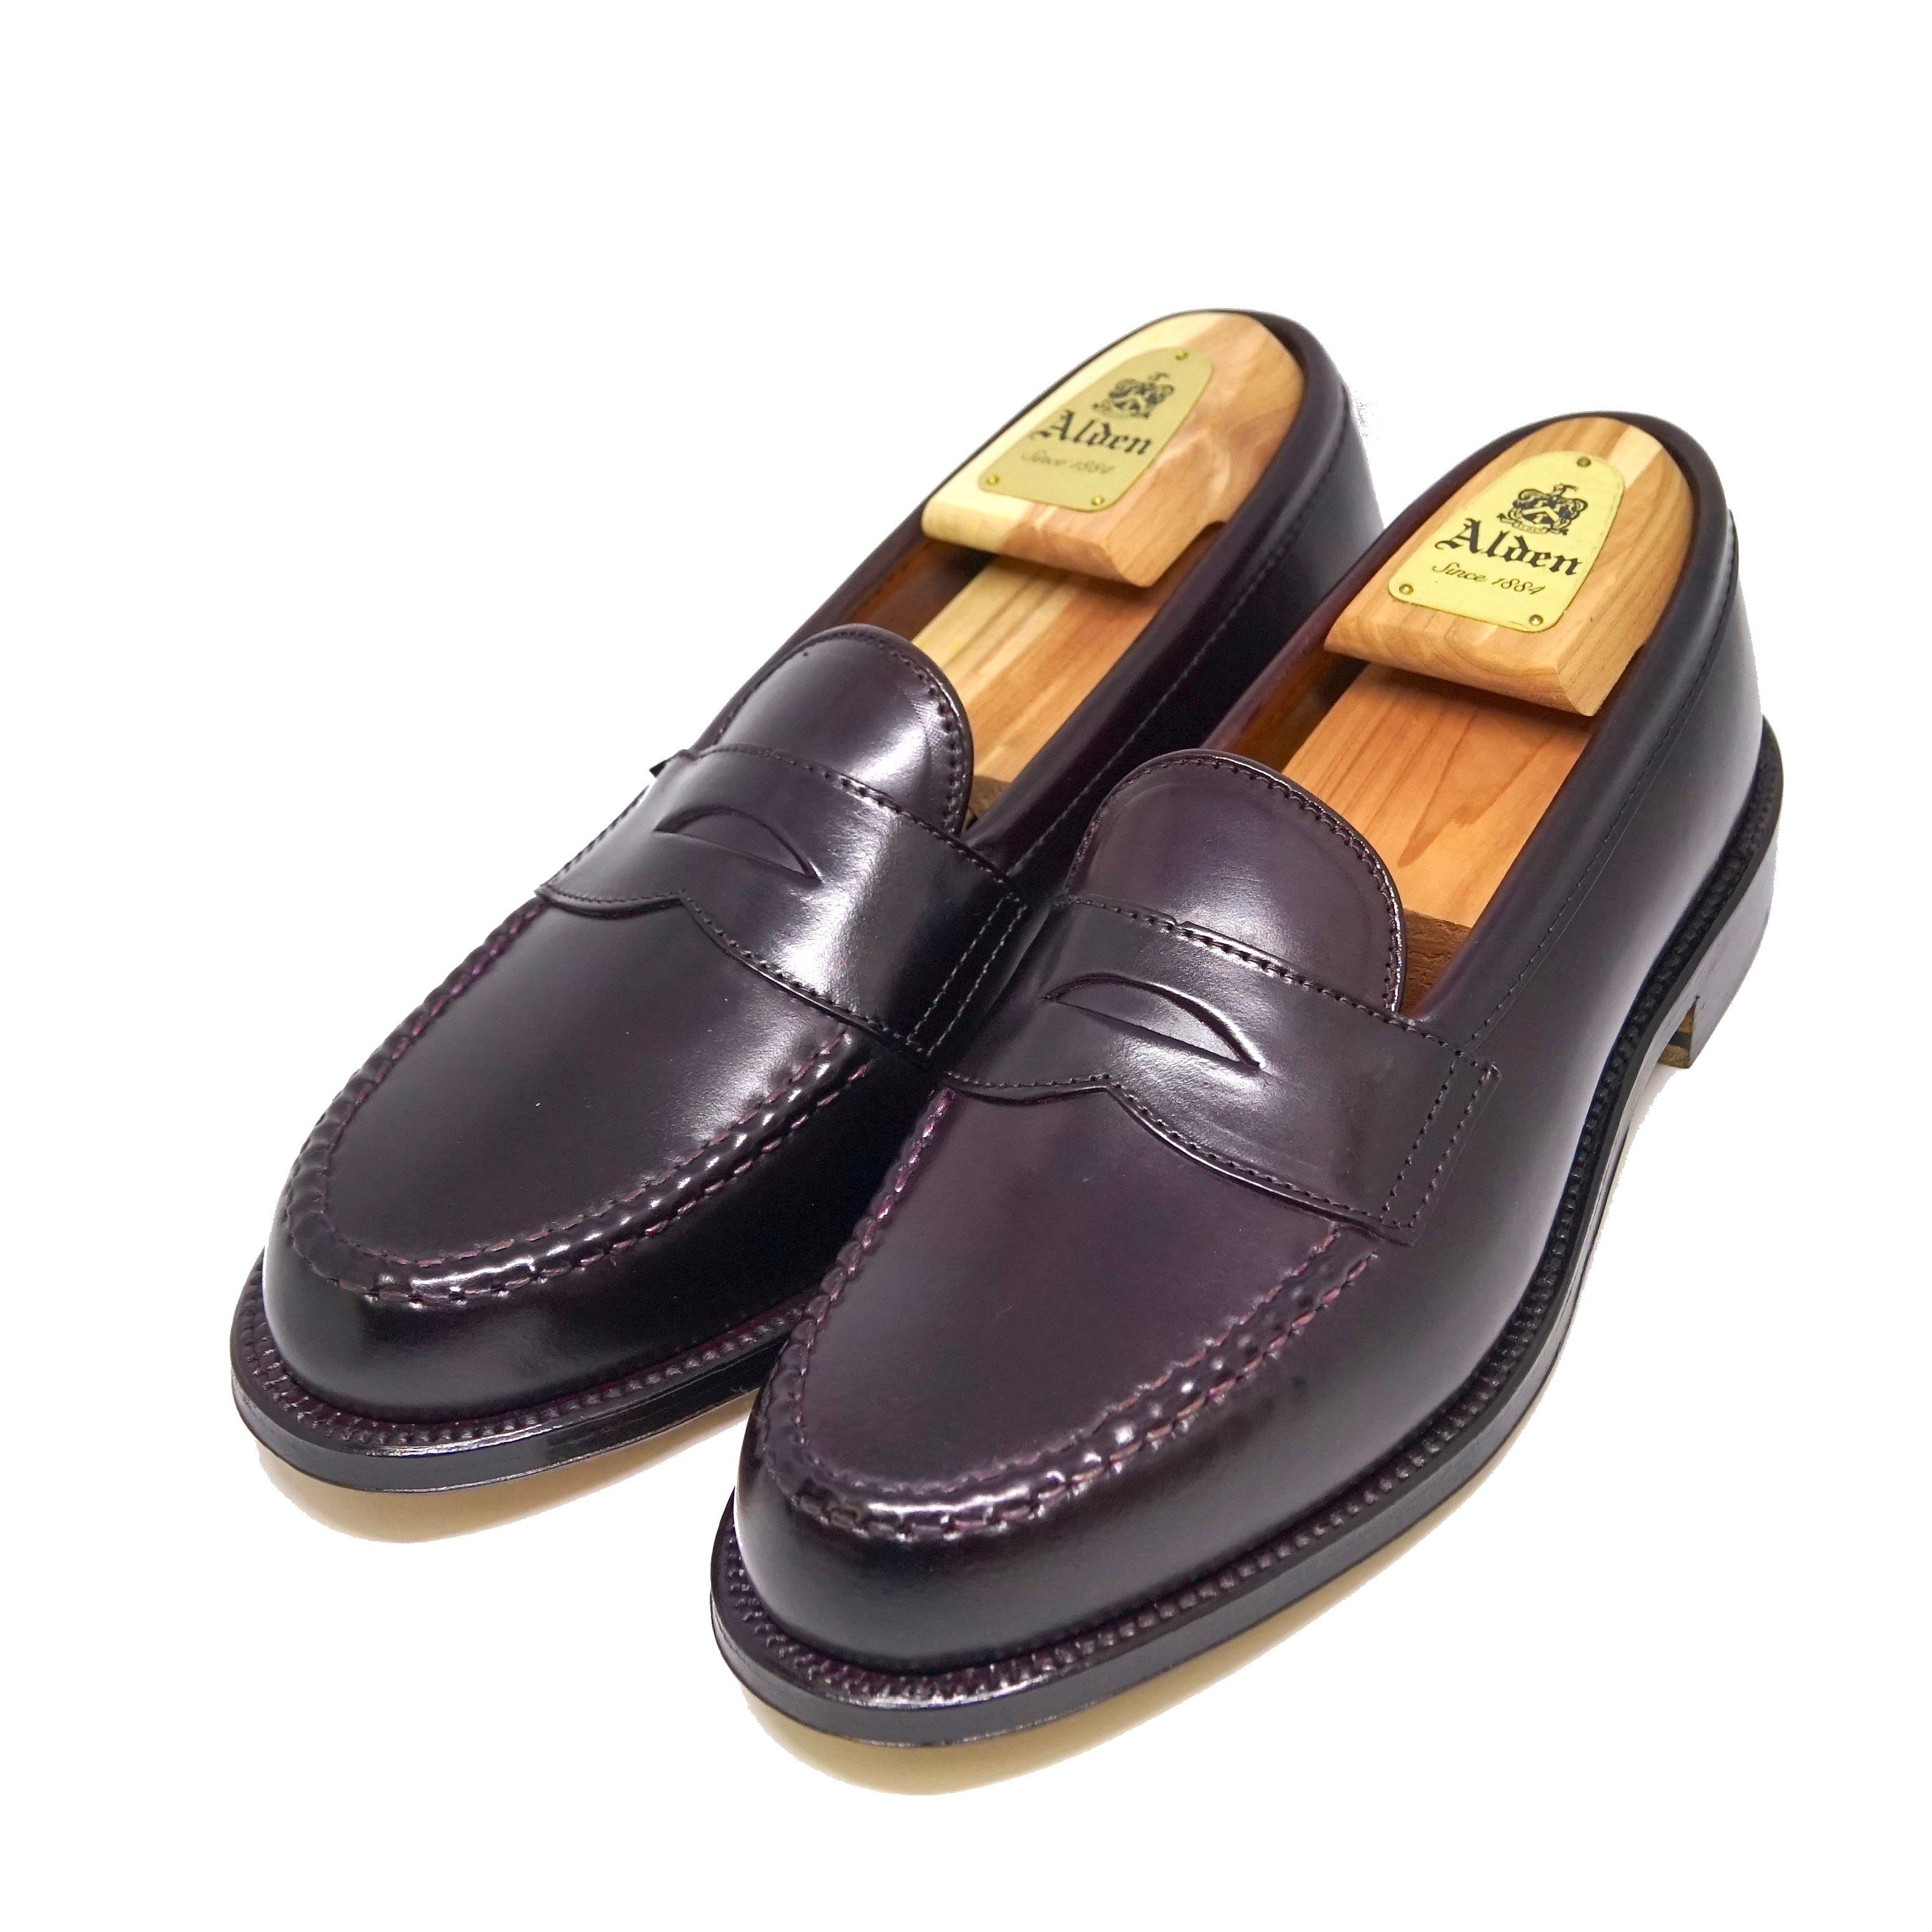 Alden 986 Penny Loafer Shell Cordovan